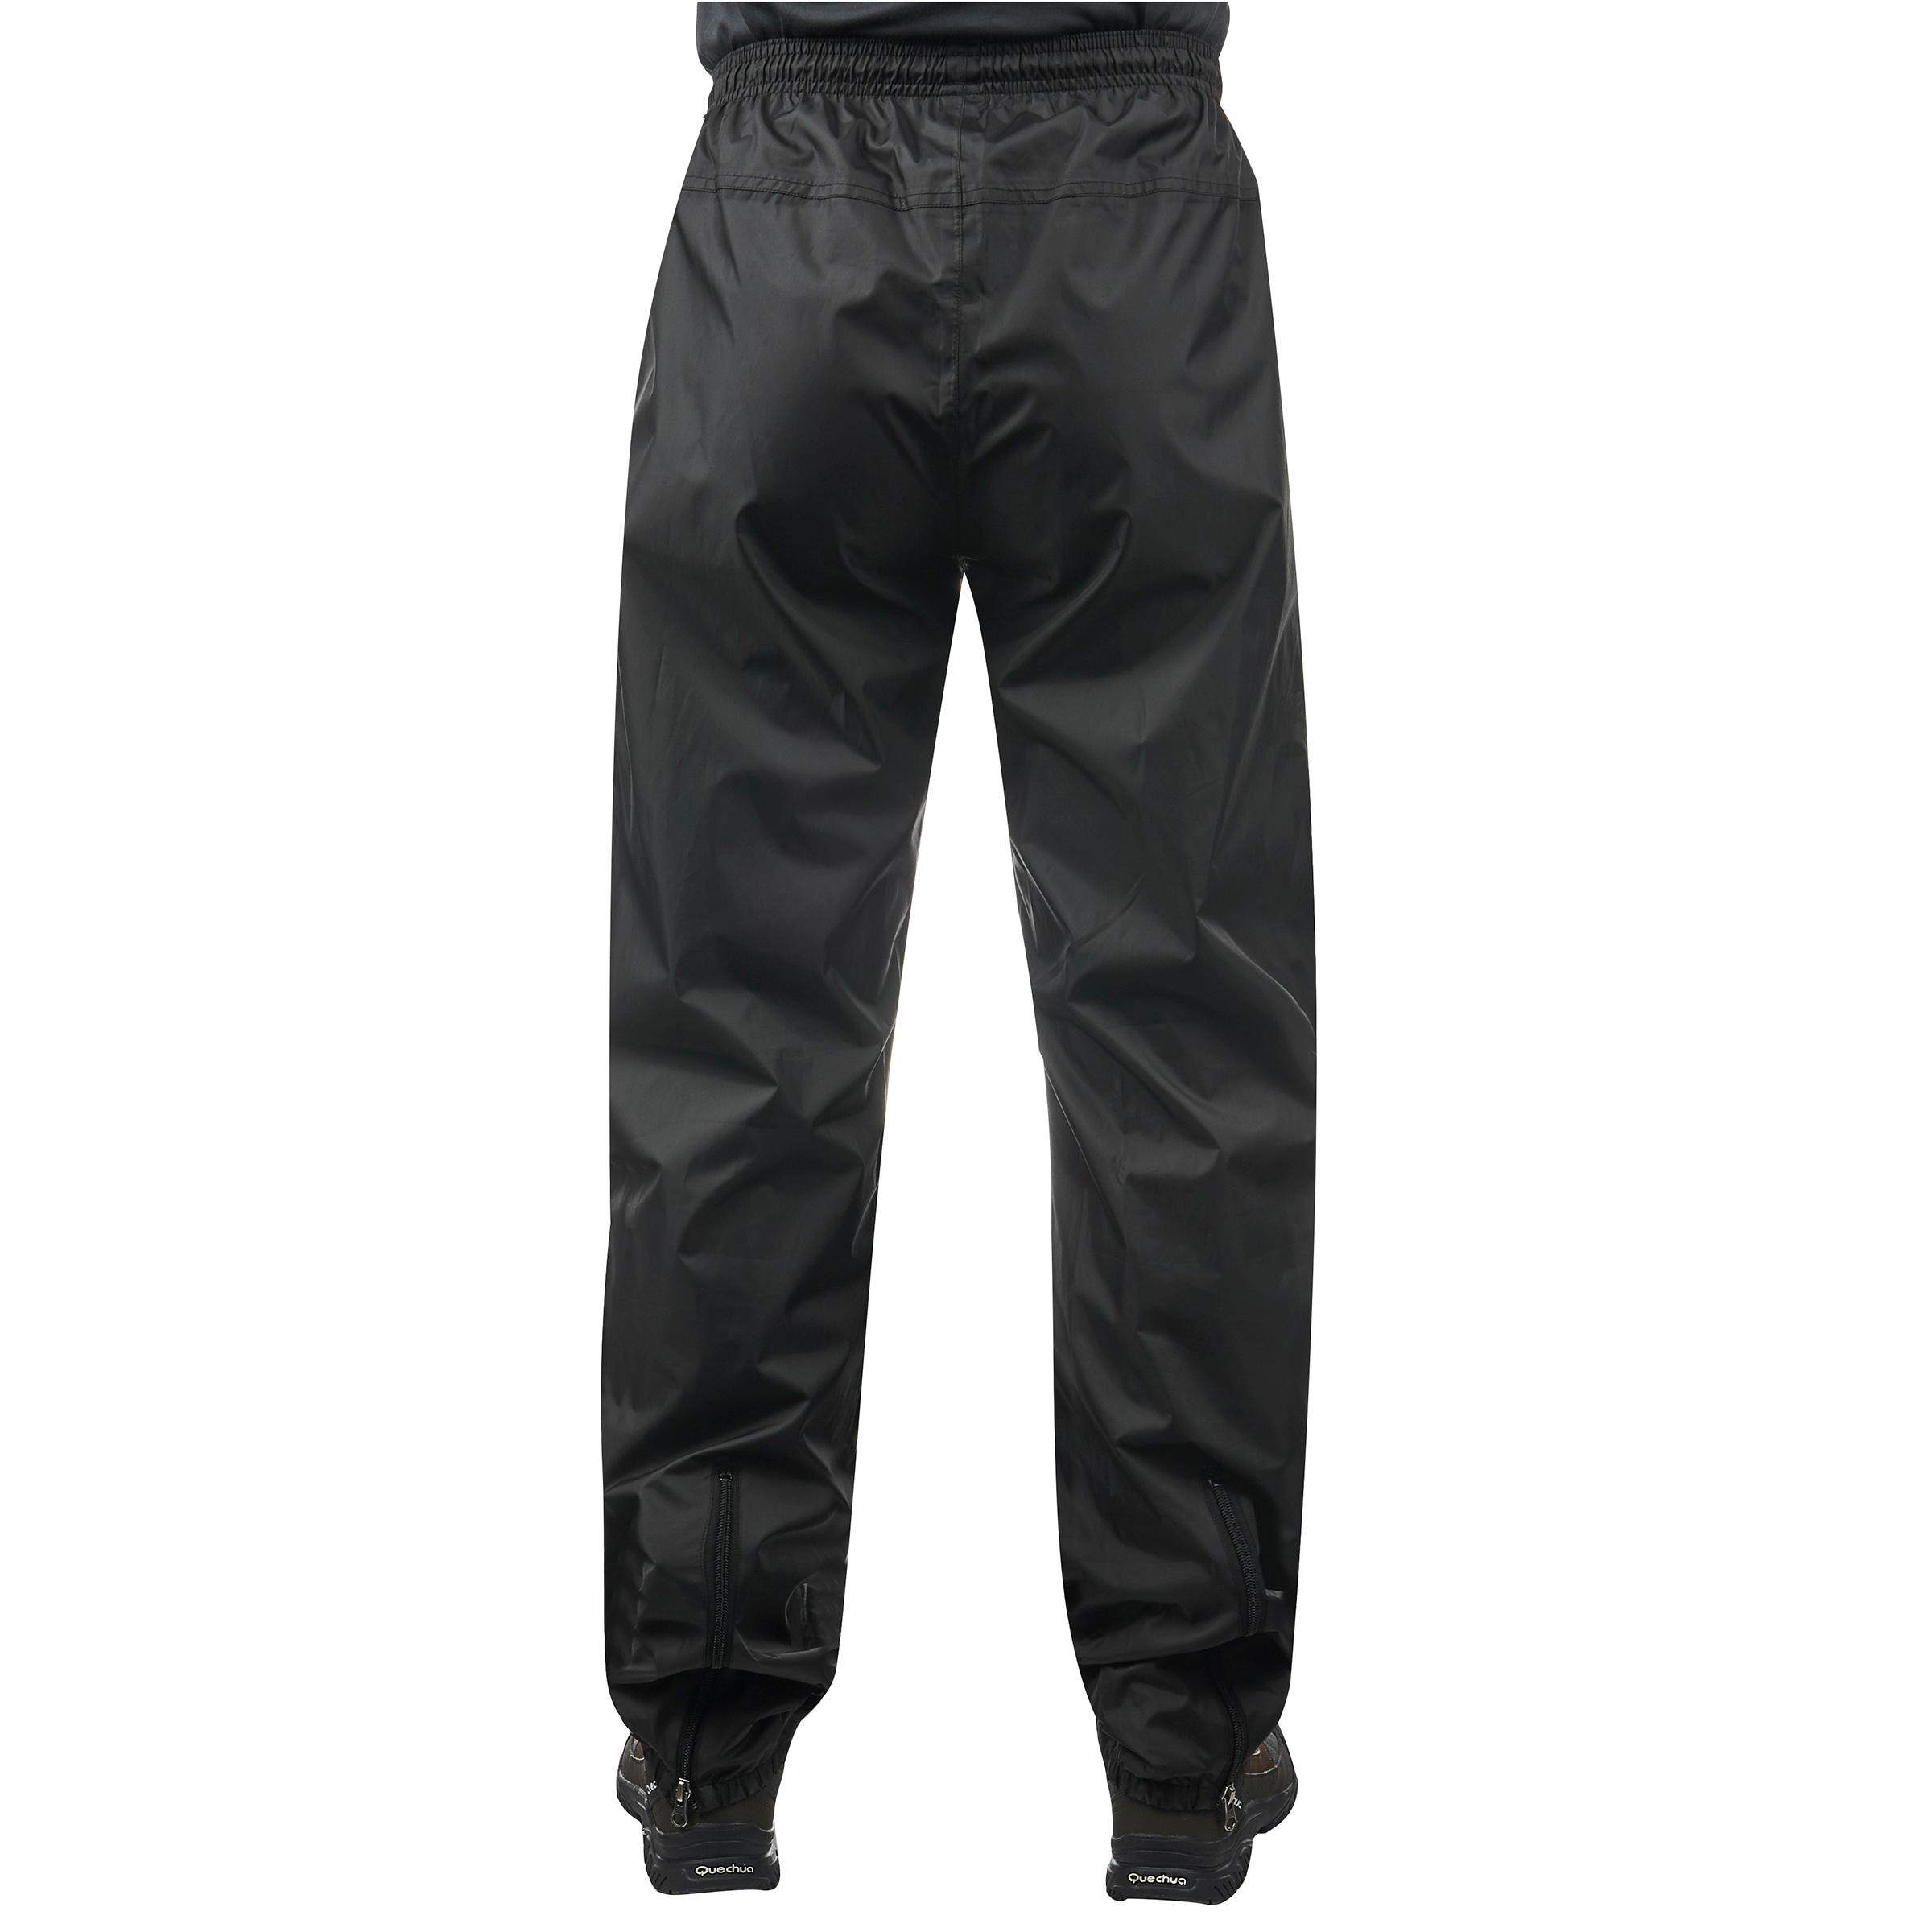 NH500 Protect men's country walking waterproof over-trousers - black